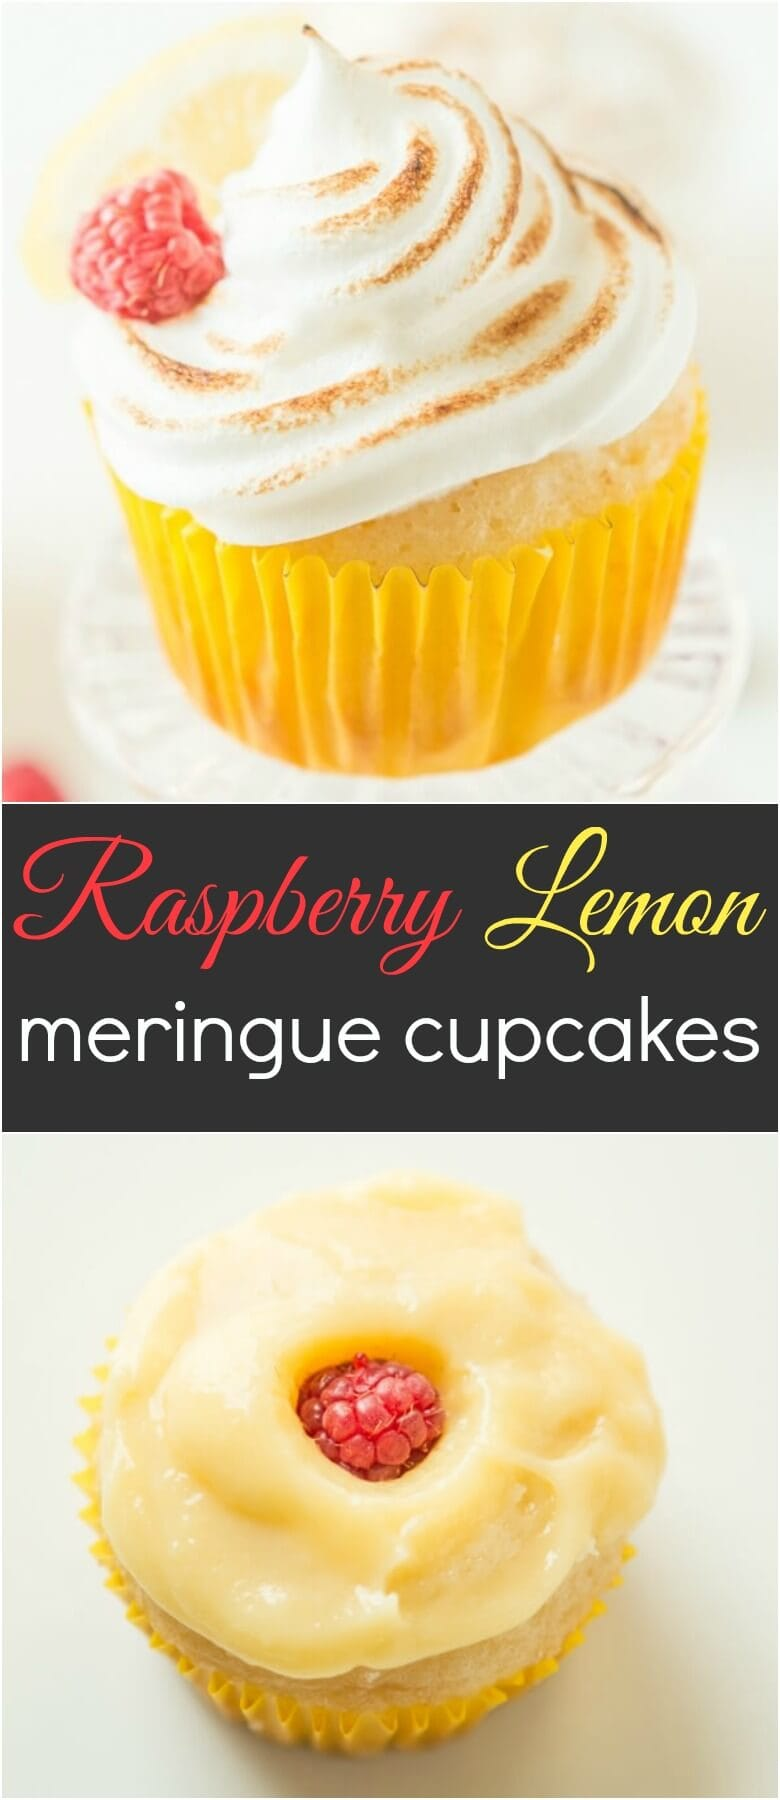 We took our favorite white cupcake and added a touch of lemon, gobs of lemon curd and a bright raspberry for these raspberry lemon meringue cupcakes!